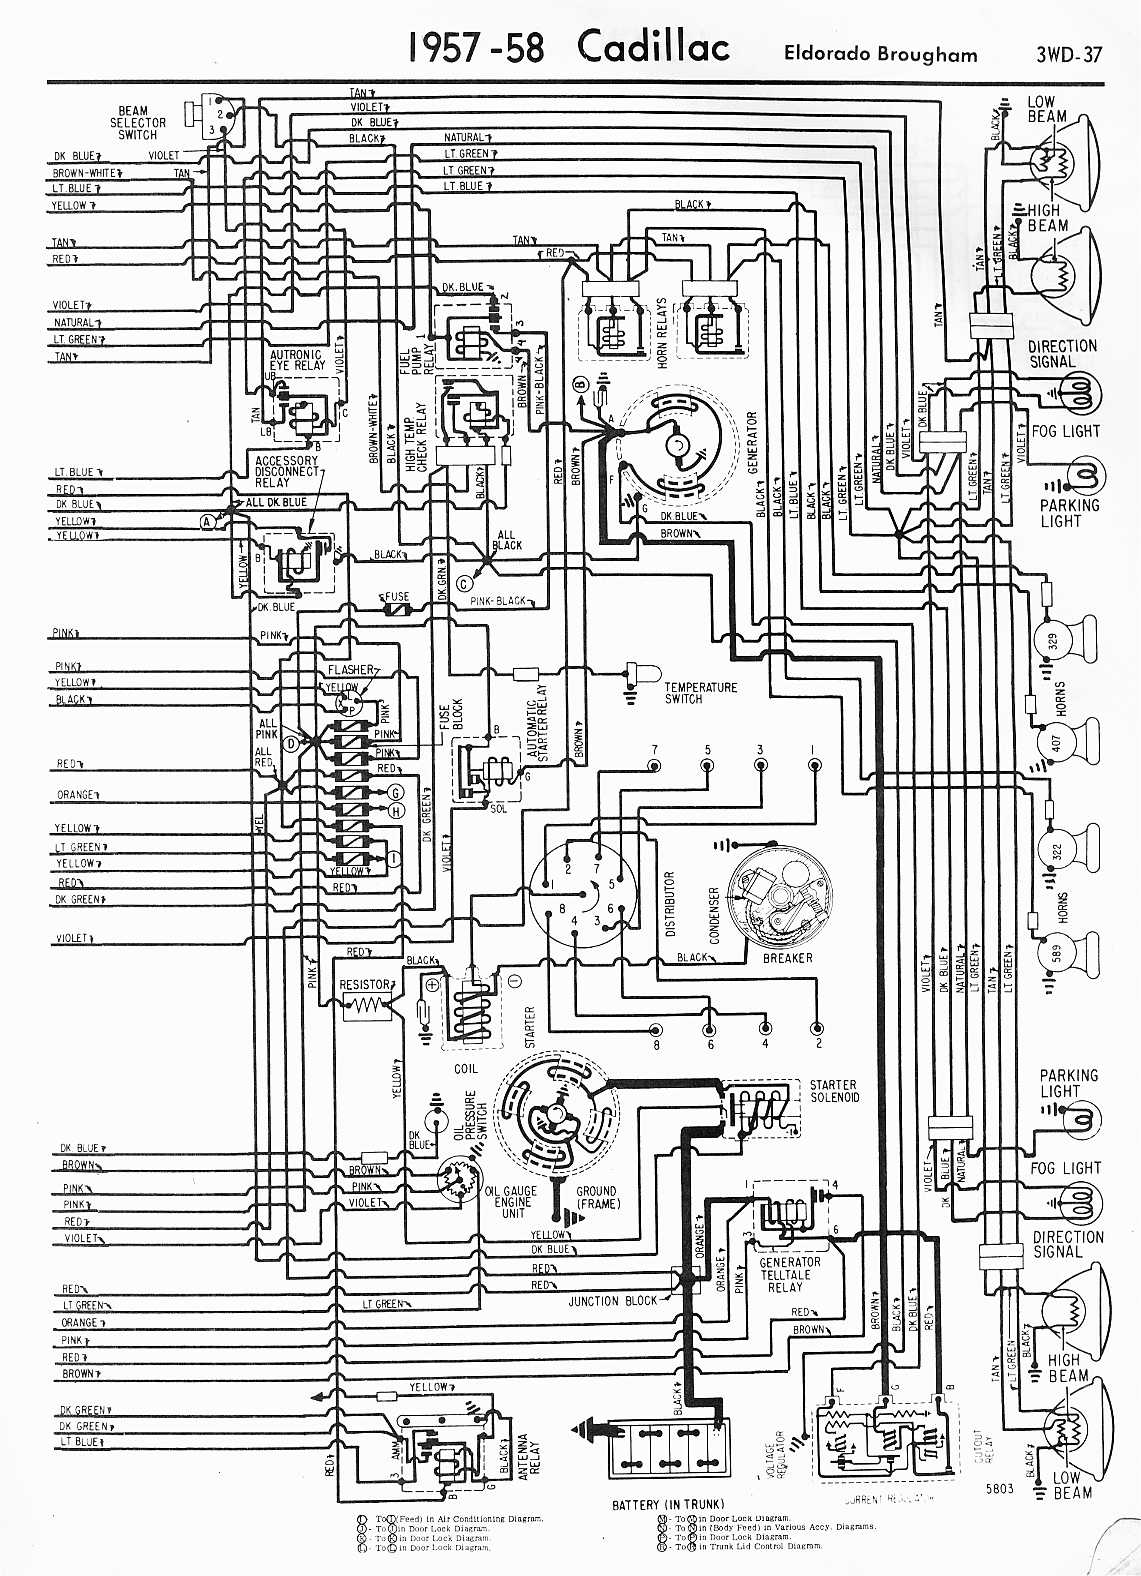 1956 Cadillac Wiring Diagram Wiring Diagram Schemes 2004 Chrysler Pacifica  Wiring-Diagram 1961 Chrysler Wiring Diagram